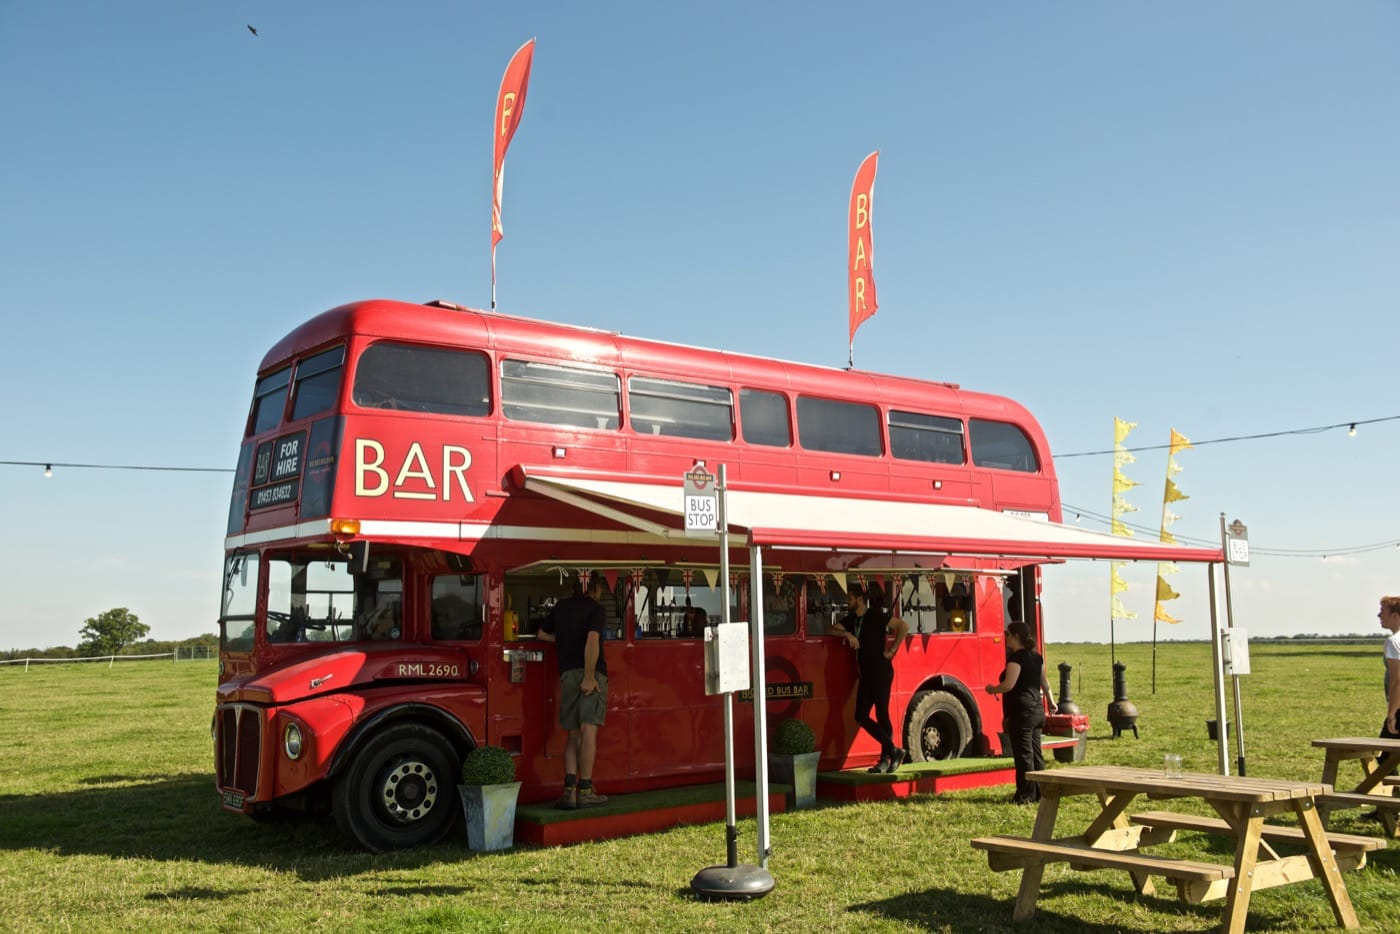 Feast-It-Big-Red-Bus-Bar-Mobile-Bar-Party-Bus